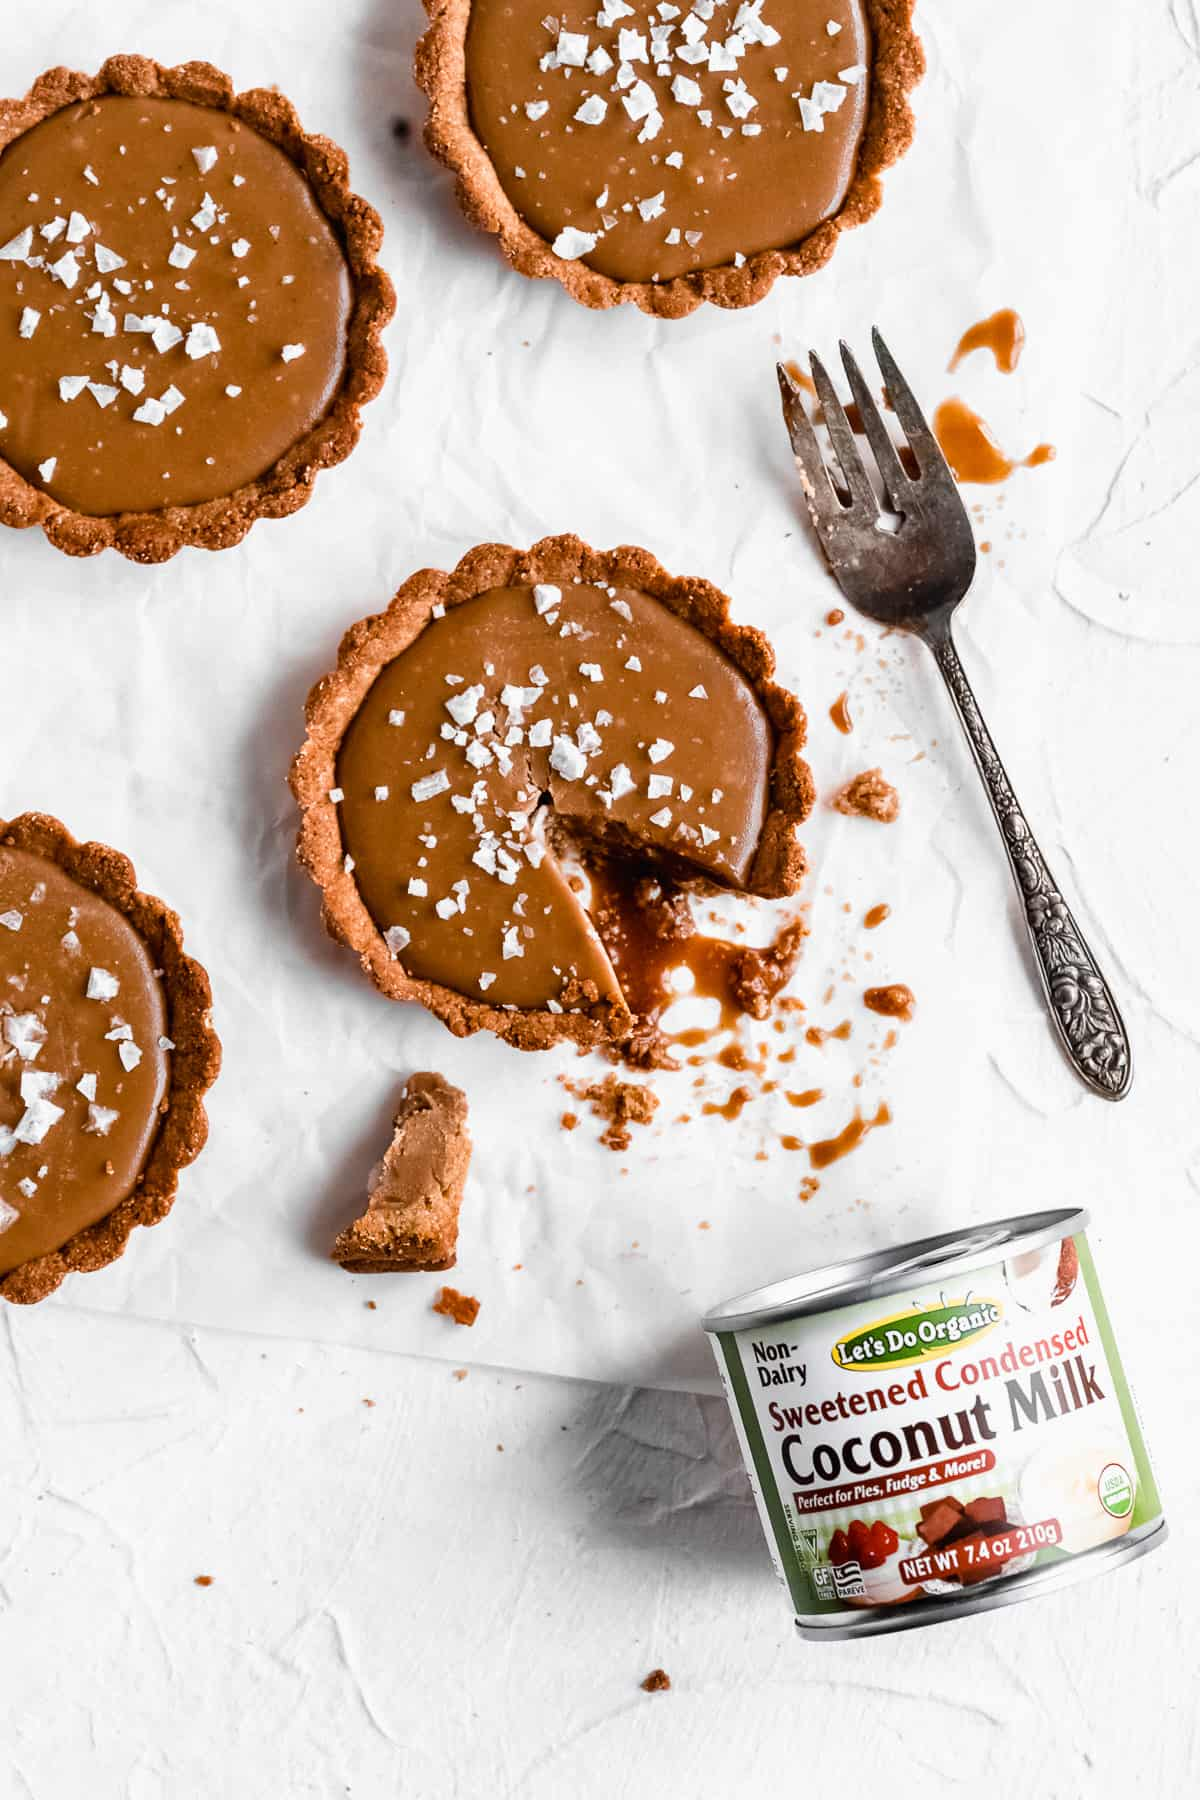 Overhead photo of several completed Vegan Salted Caramel Tarts arranged on white parchment paper.  One tart has a bite missing and a silver fork placed nearby.  A can of Edward & Sons Coconut Milk lays at the bottom of the photo.